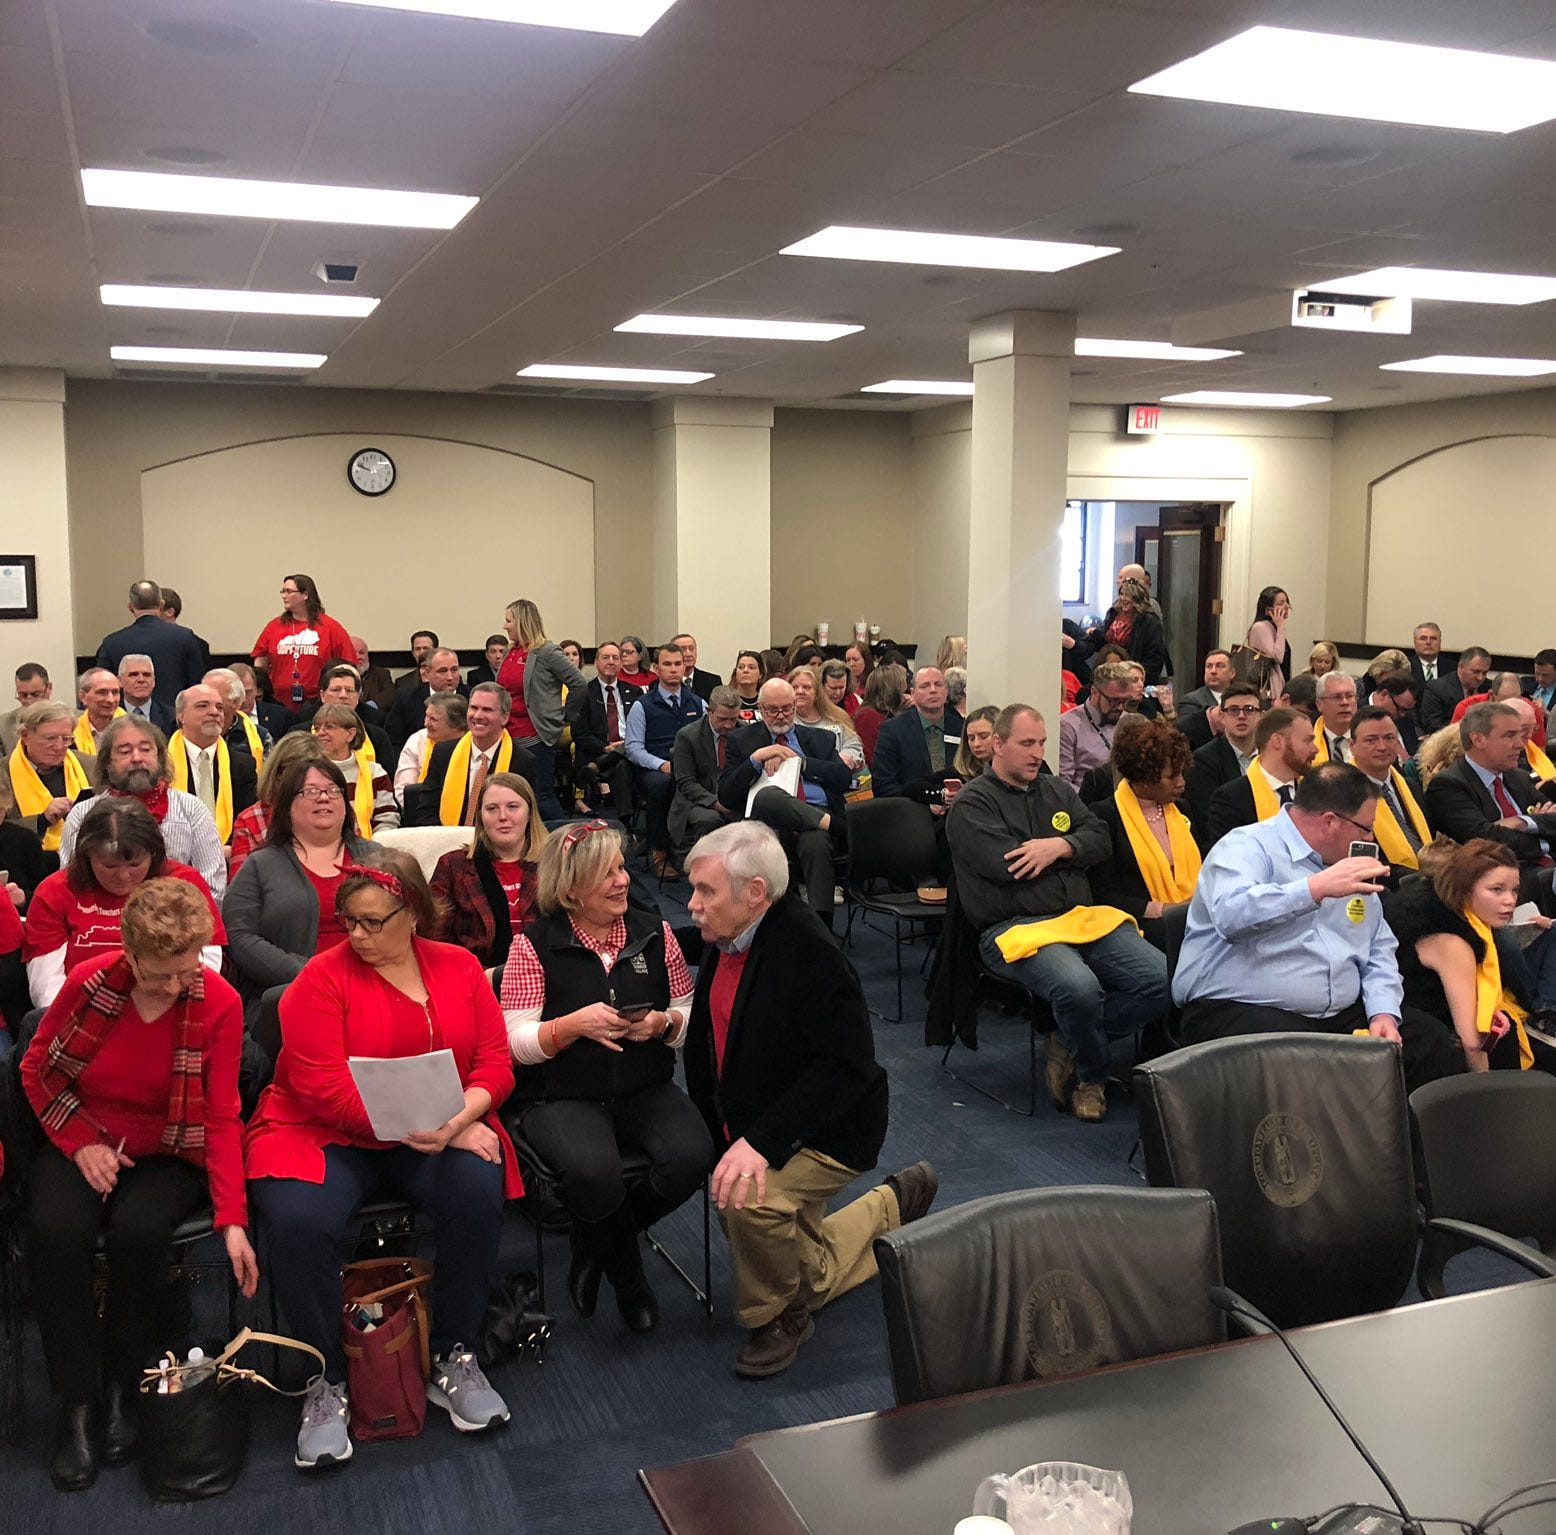 JCPS teachers sickout: What to know about the private school tax bill